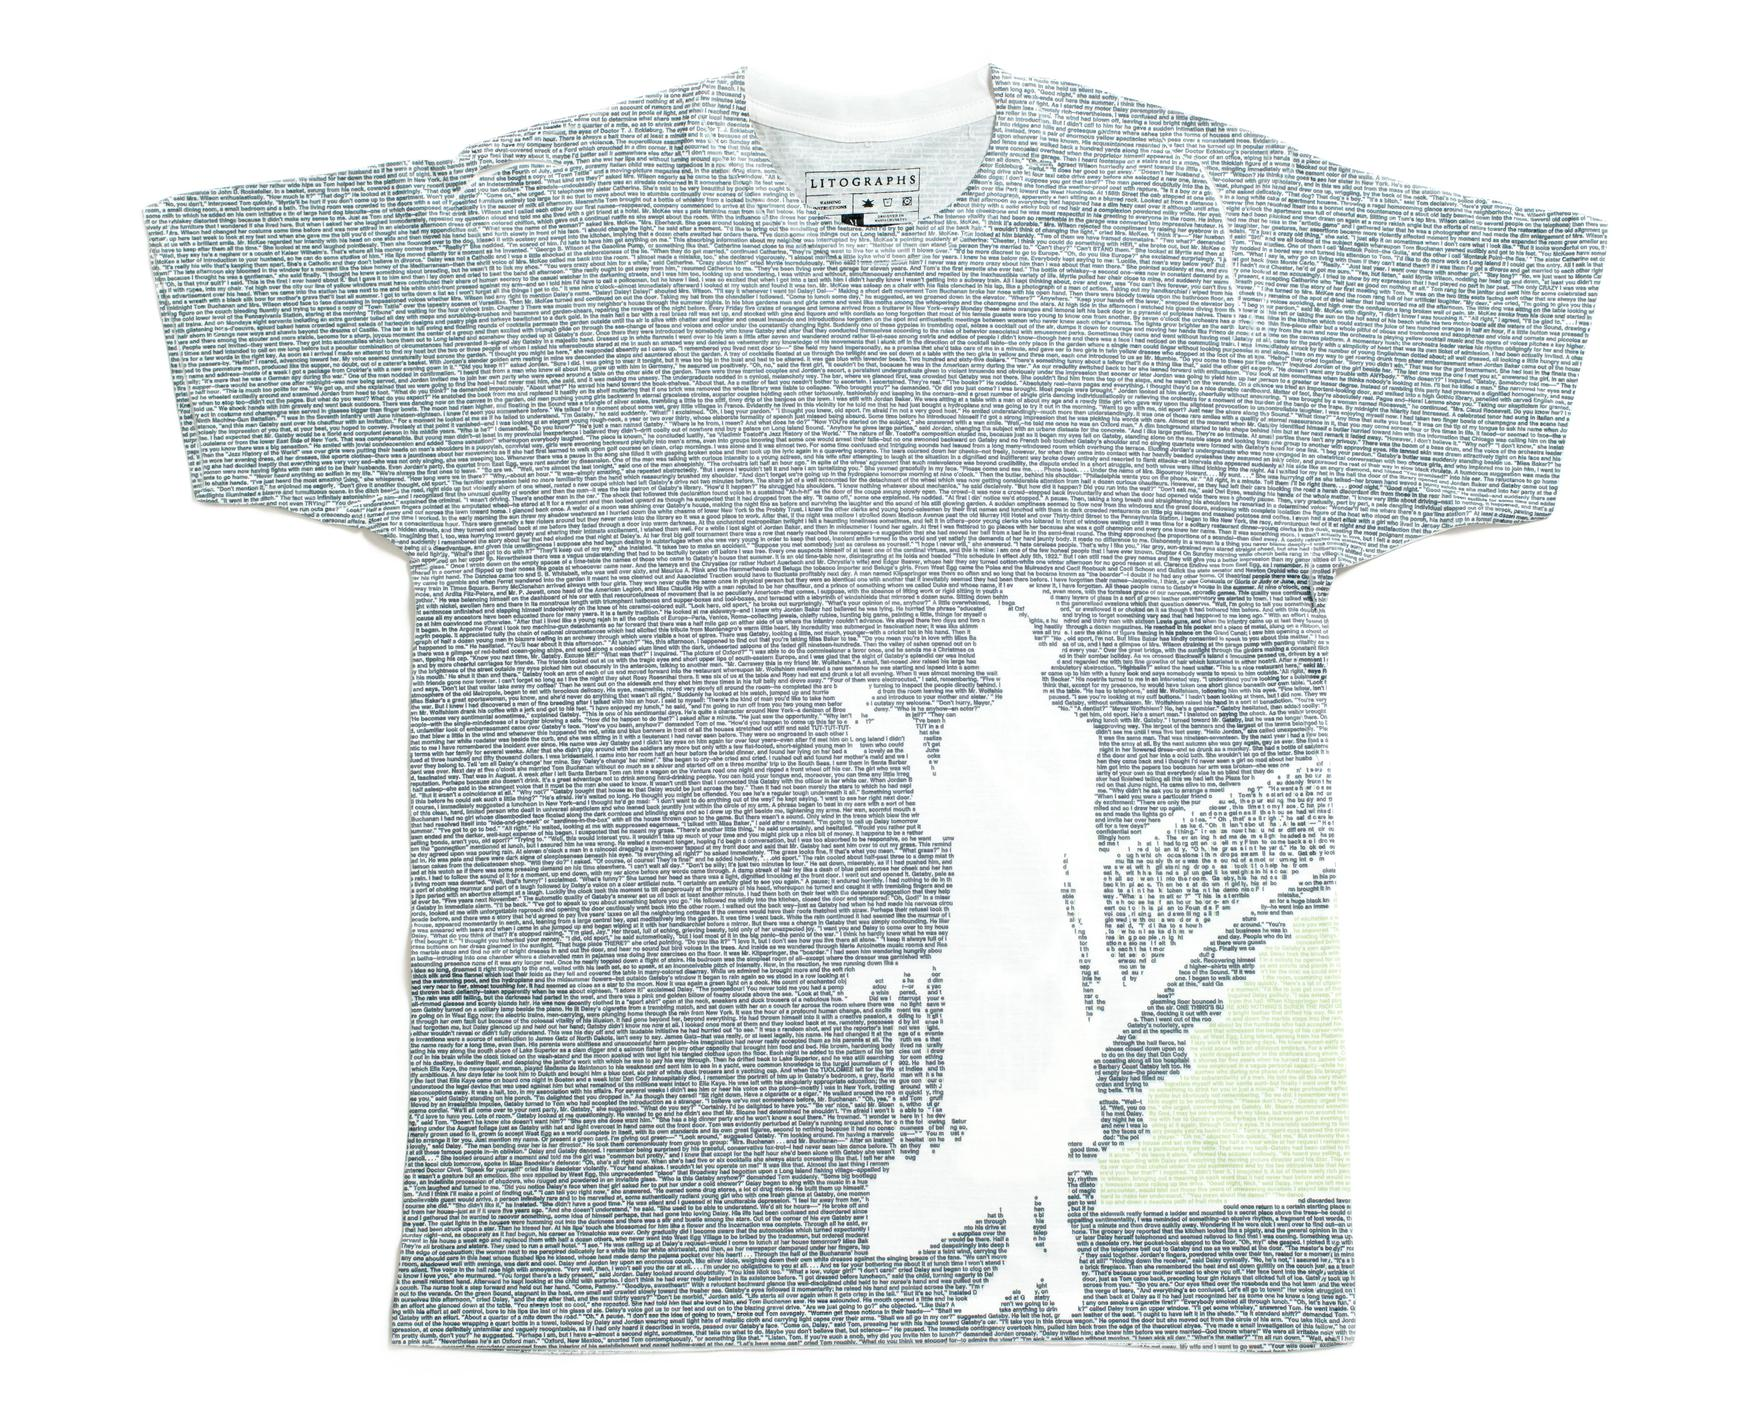 Litographs | Books on T-shirts, Posters, and Tote Bags